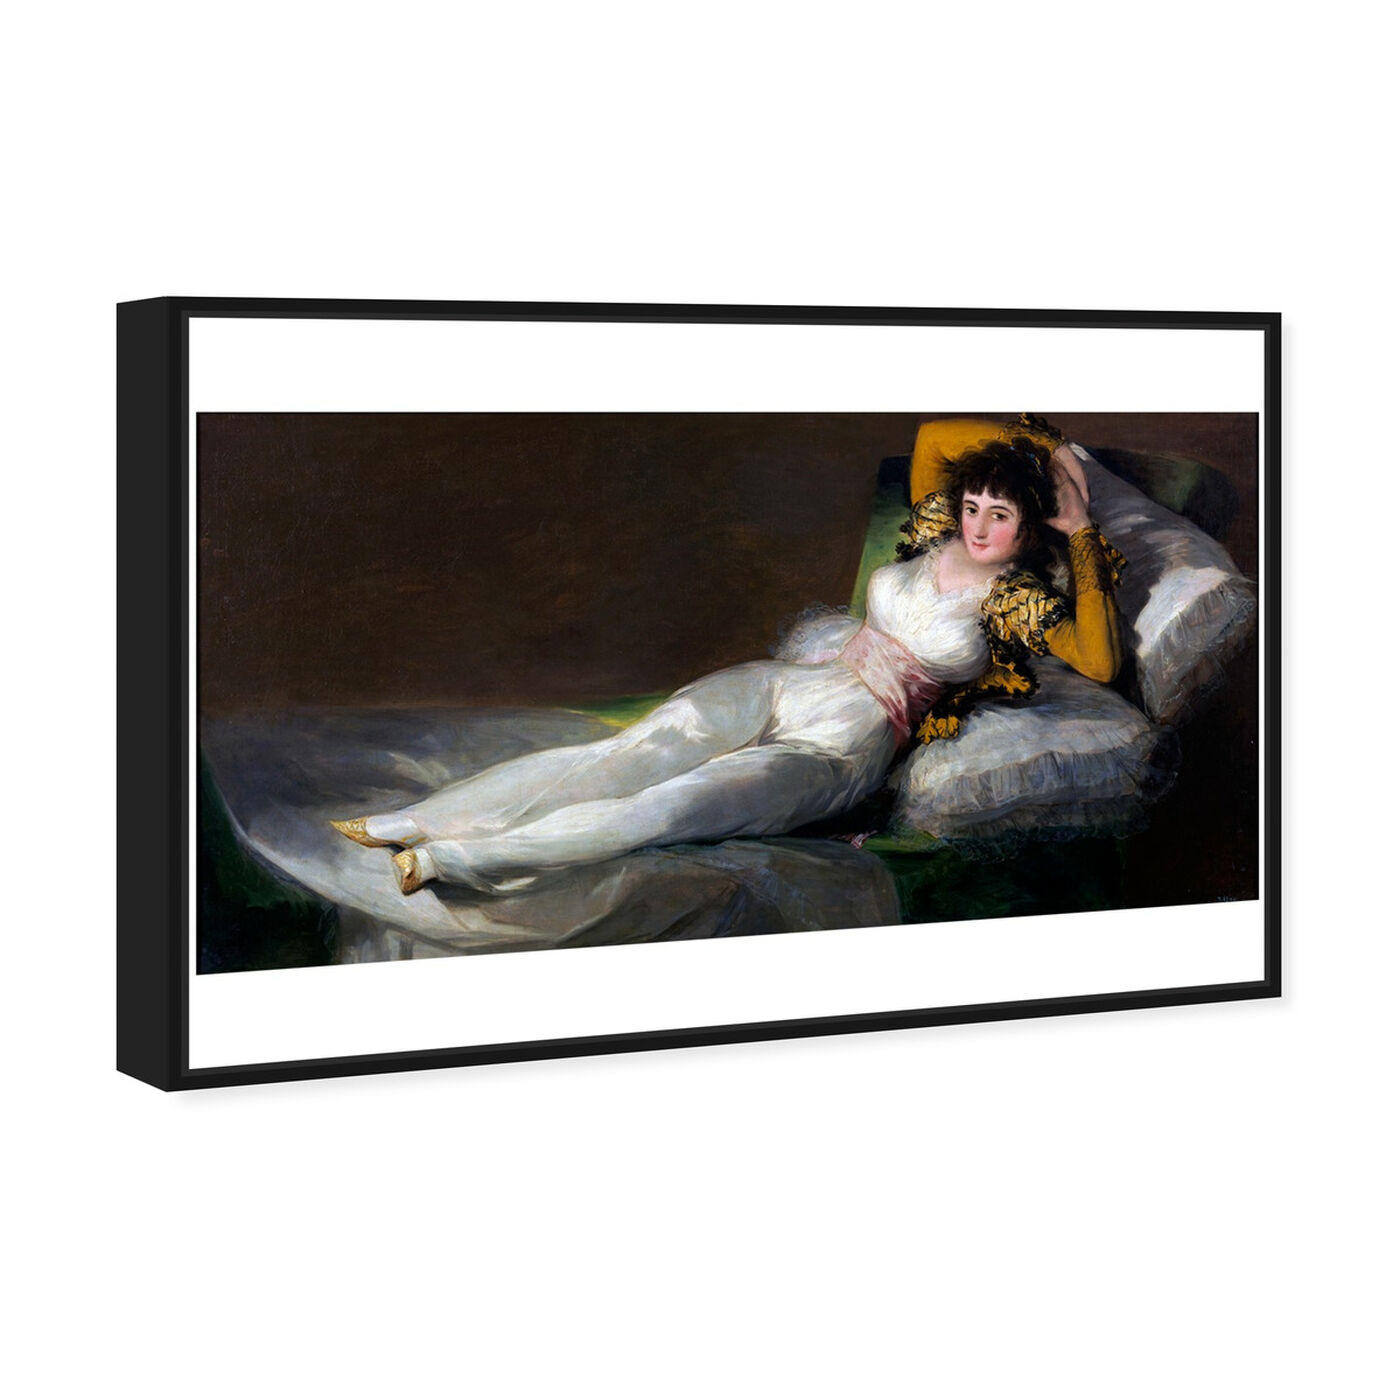 Angled view of Goya - La Maja Vestida featuring classic and figurative and renaissance art.